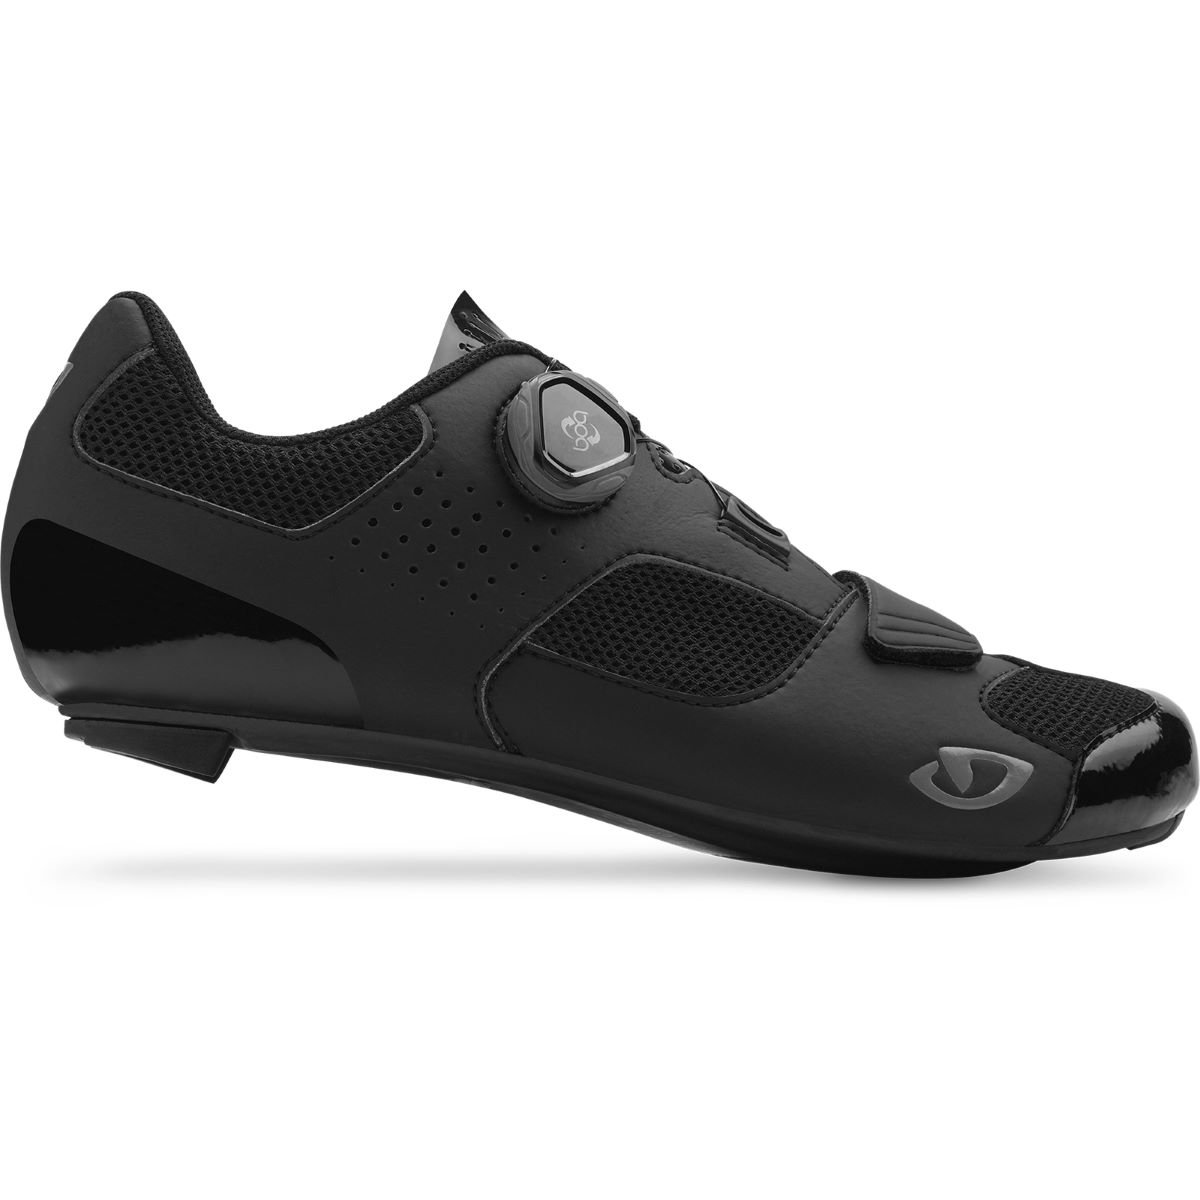 Giro Giro Trans BOA HV Road Shoes   Cycling Shoes